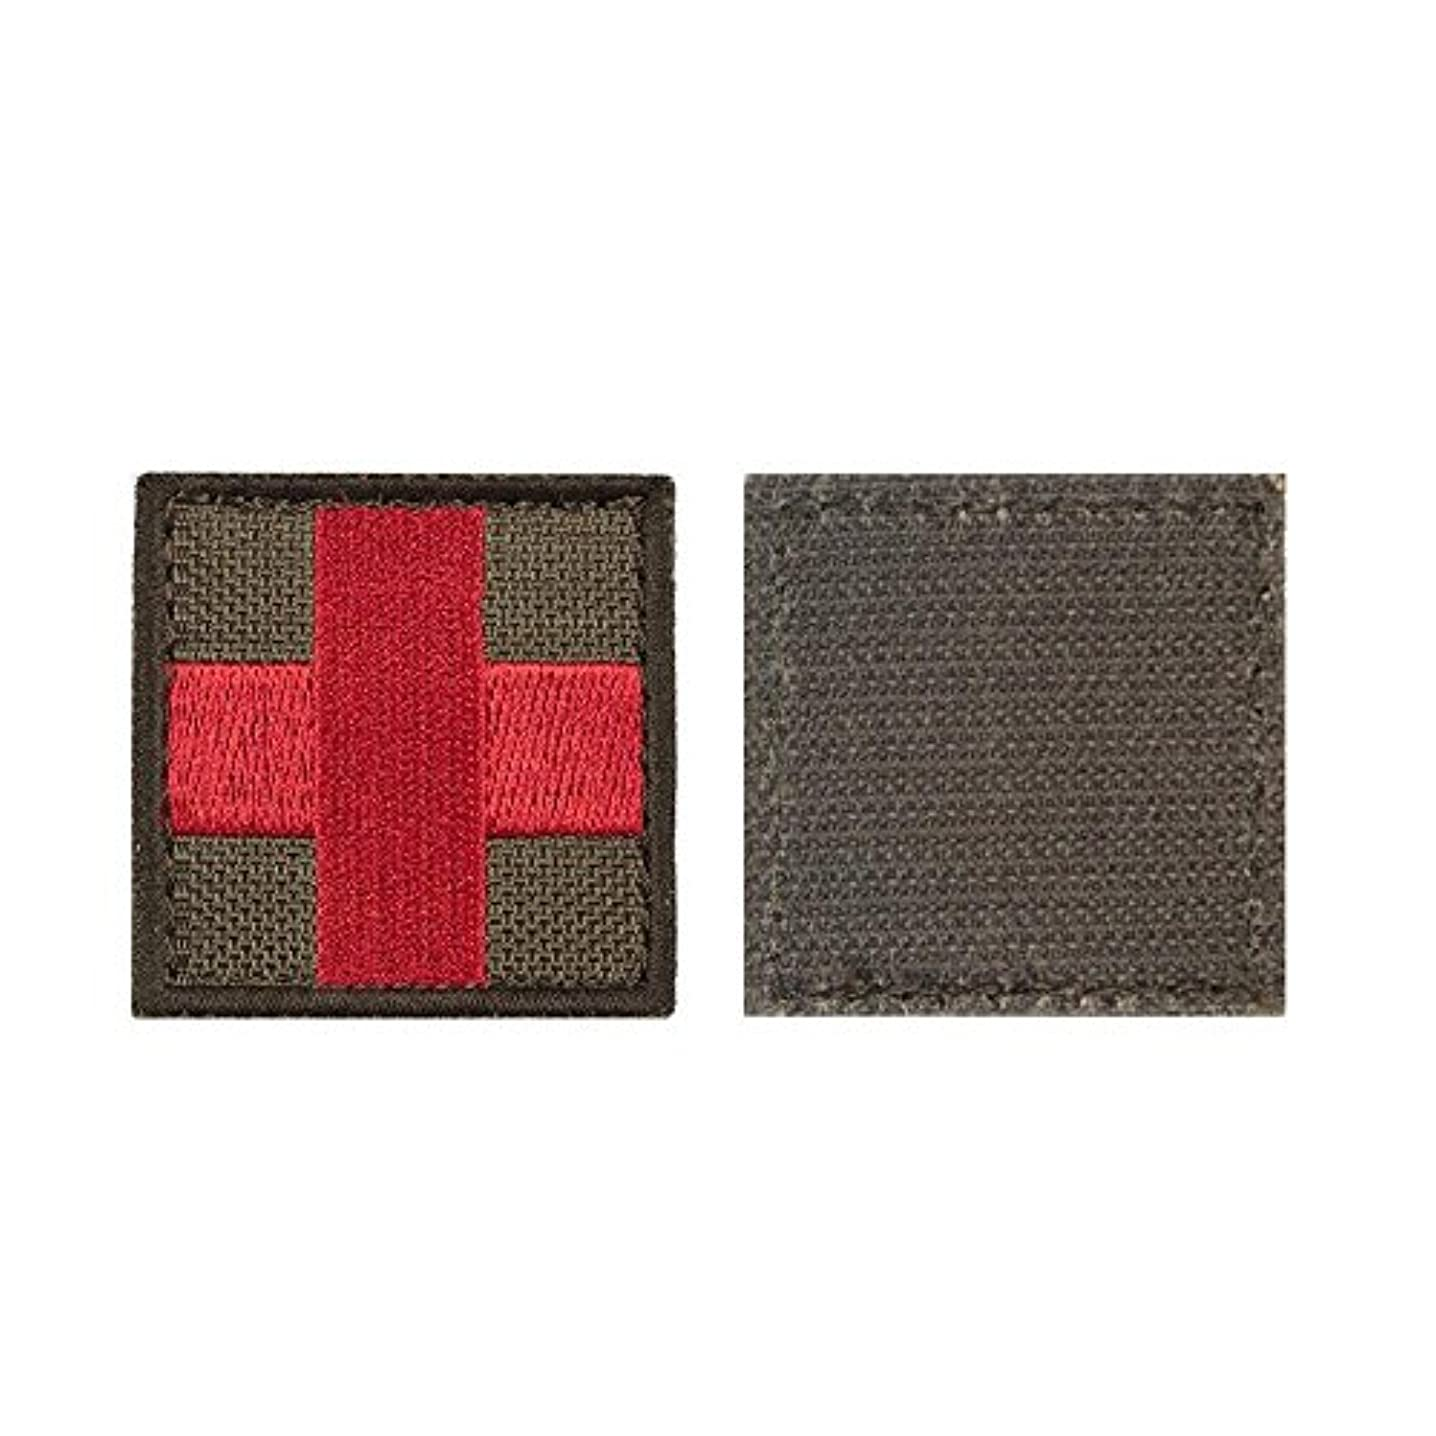 yisibo 2pieces Red Cross Medic First Aid Morale Embroidered Tactical Patch (Square, Red Cross-Ranger Green)